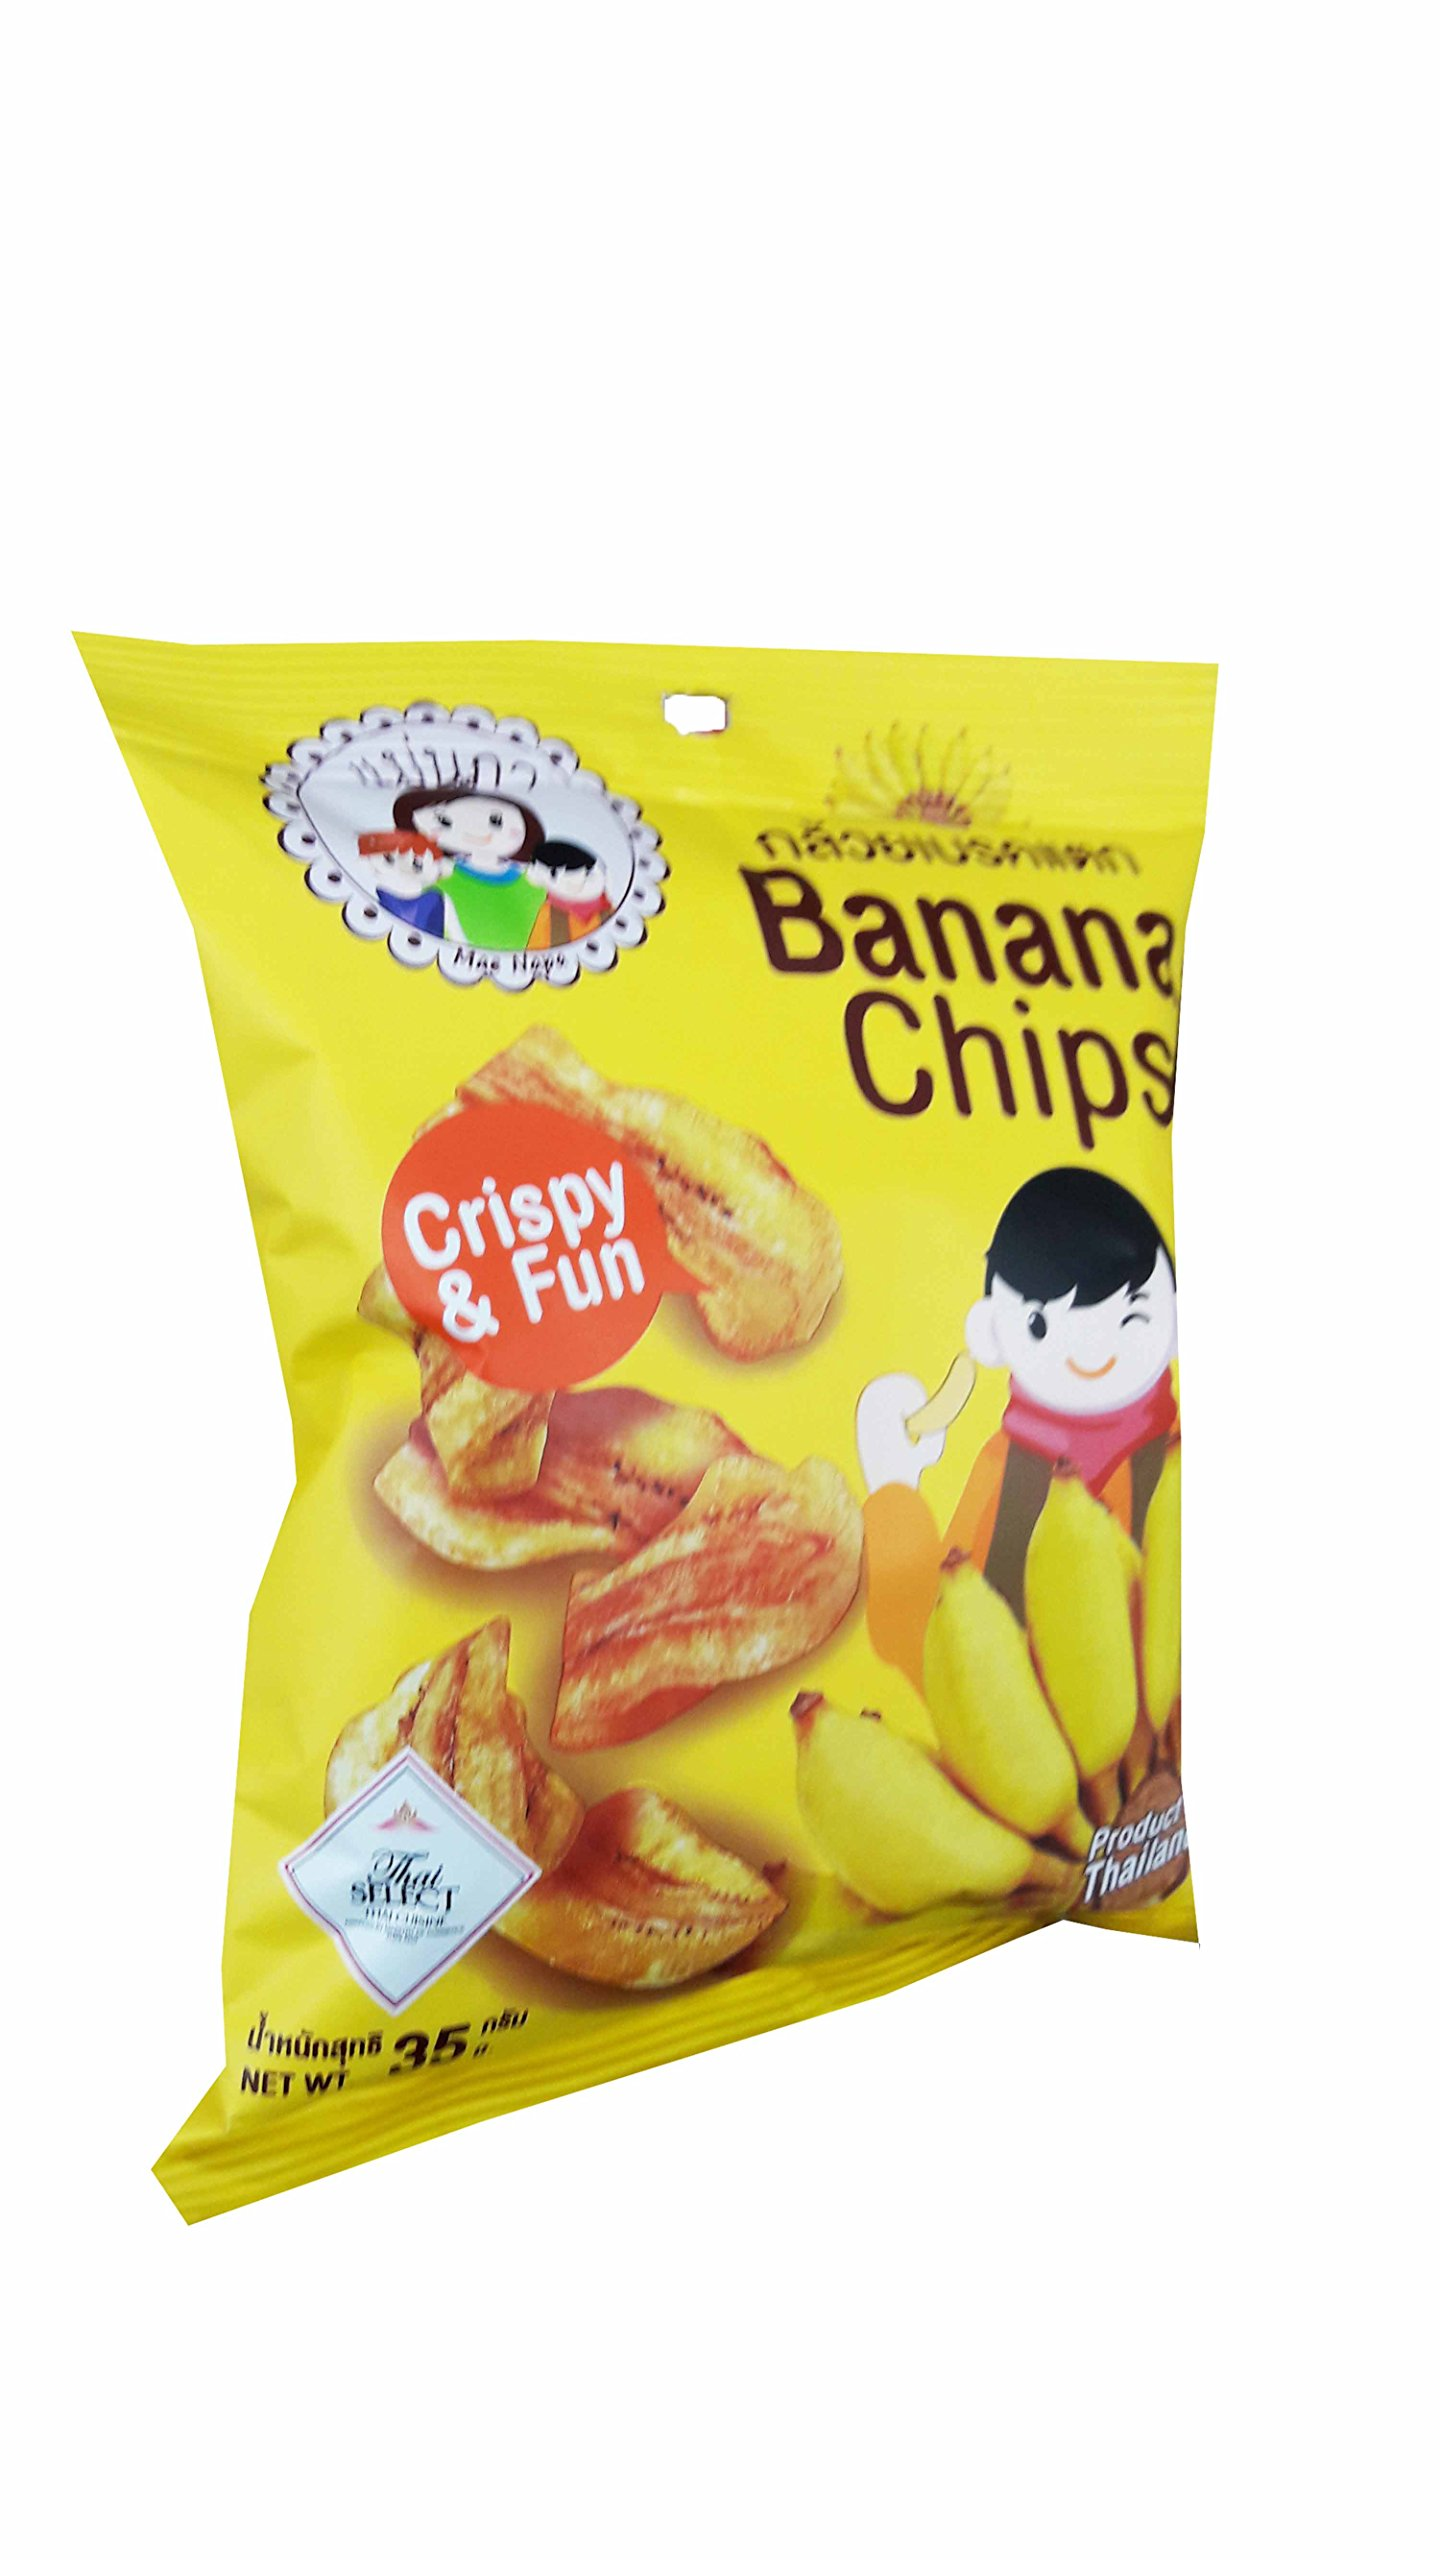 3 packs of Banana Chips, Crispy Banana by Mae Napa, Healthy and Delicious Snack. Premium quality snack from Thailand.(35 g/pack) by Mae Napa (Image #3)